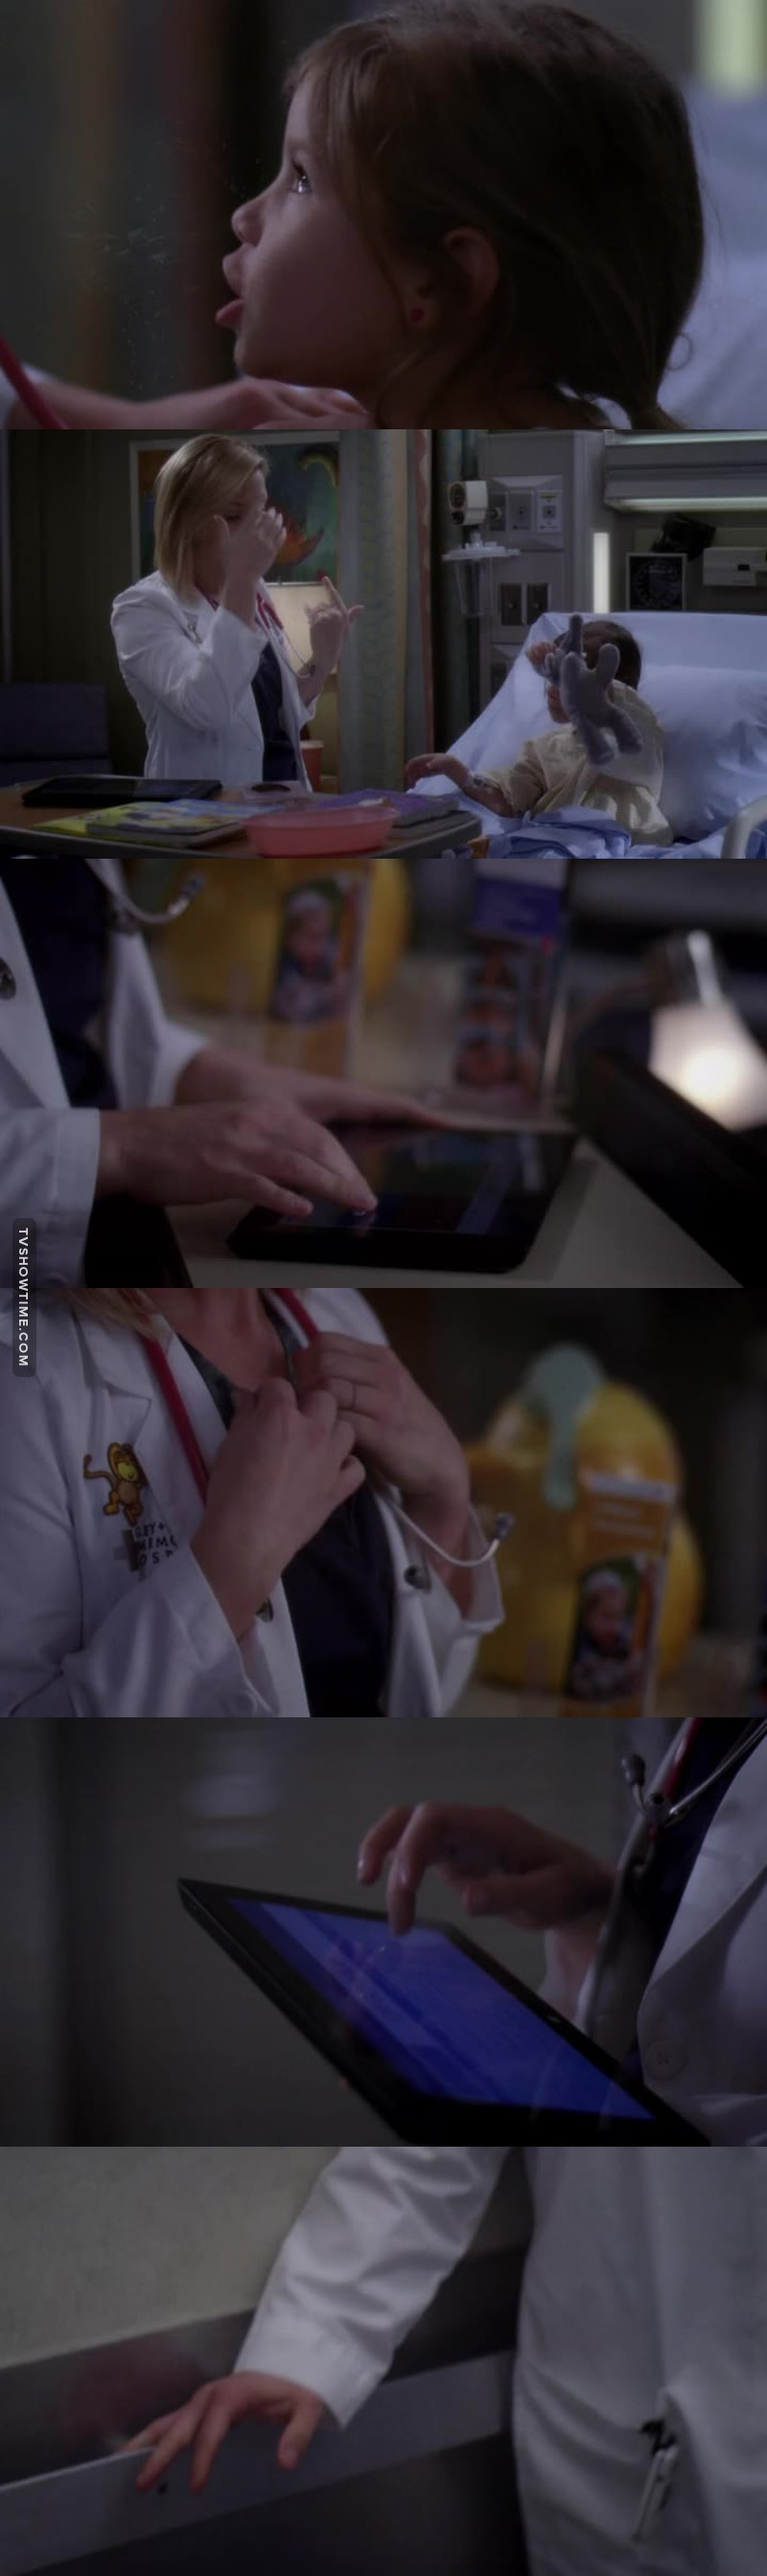 This episode makes me think of everything I touch throughout the day, I'm a little paranoid now haha